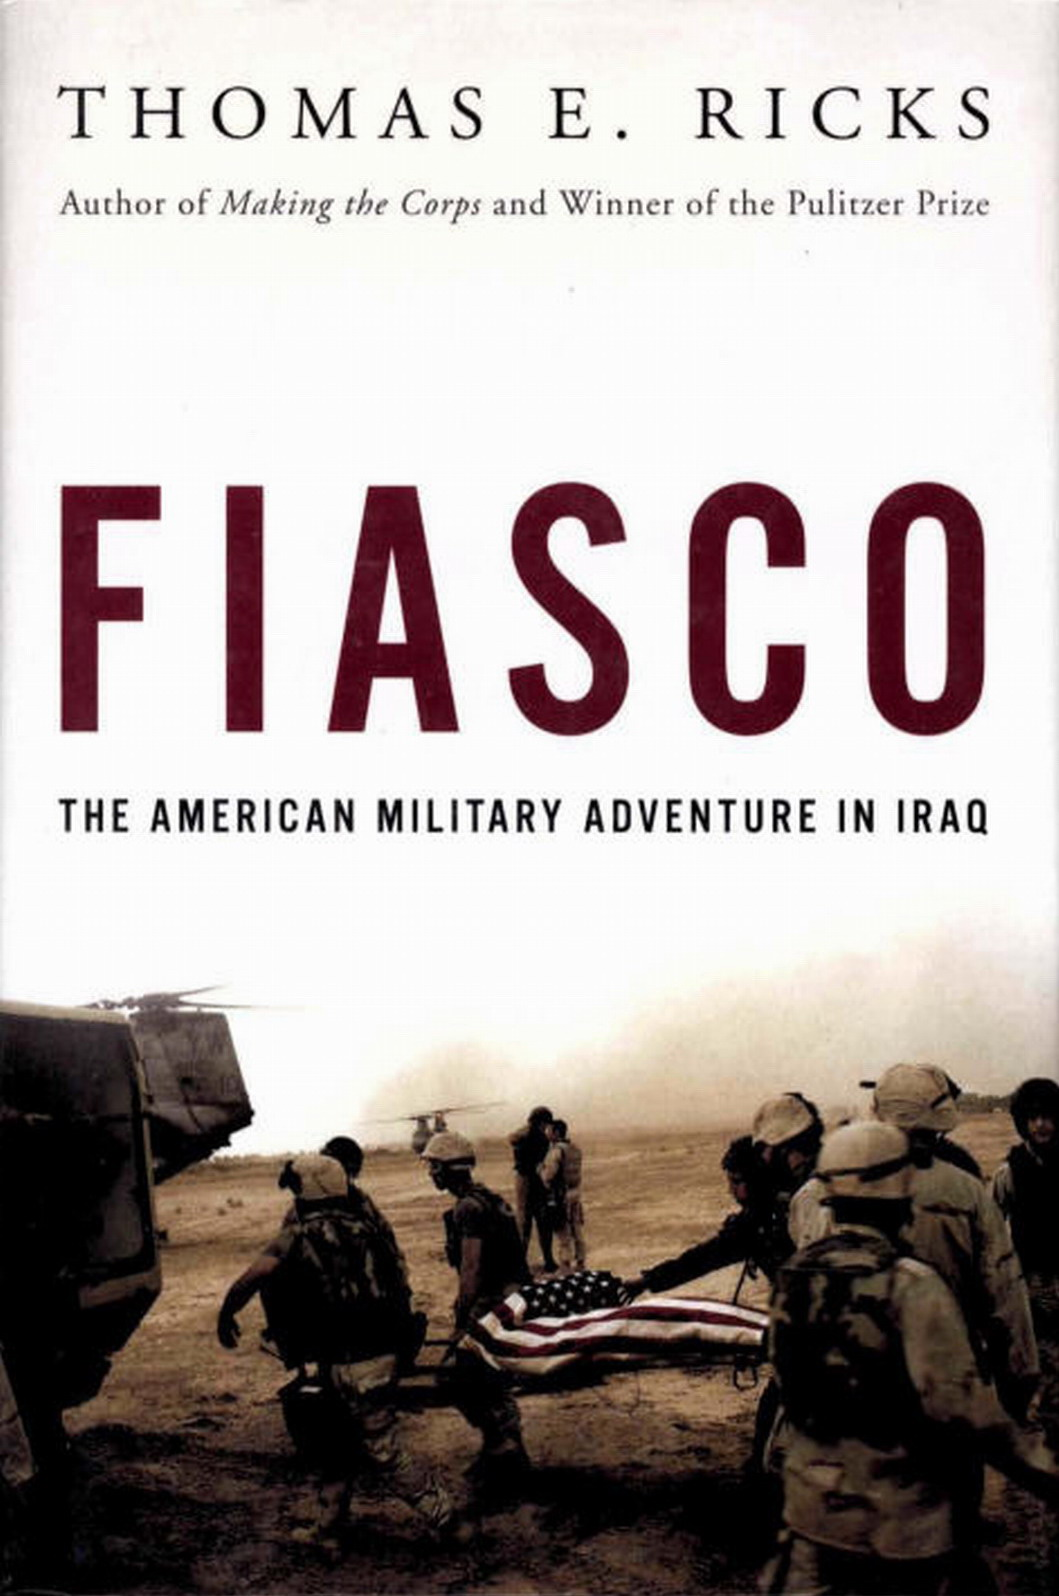 Fiasco: The American Military Adventure in Iraq Thomas E. Ricks